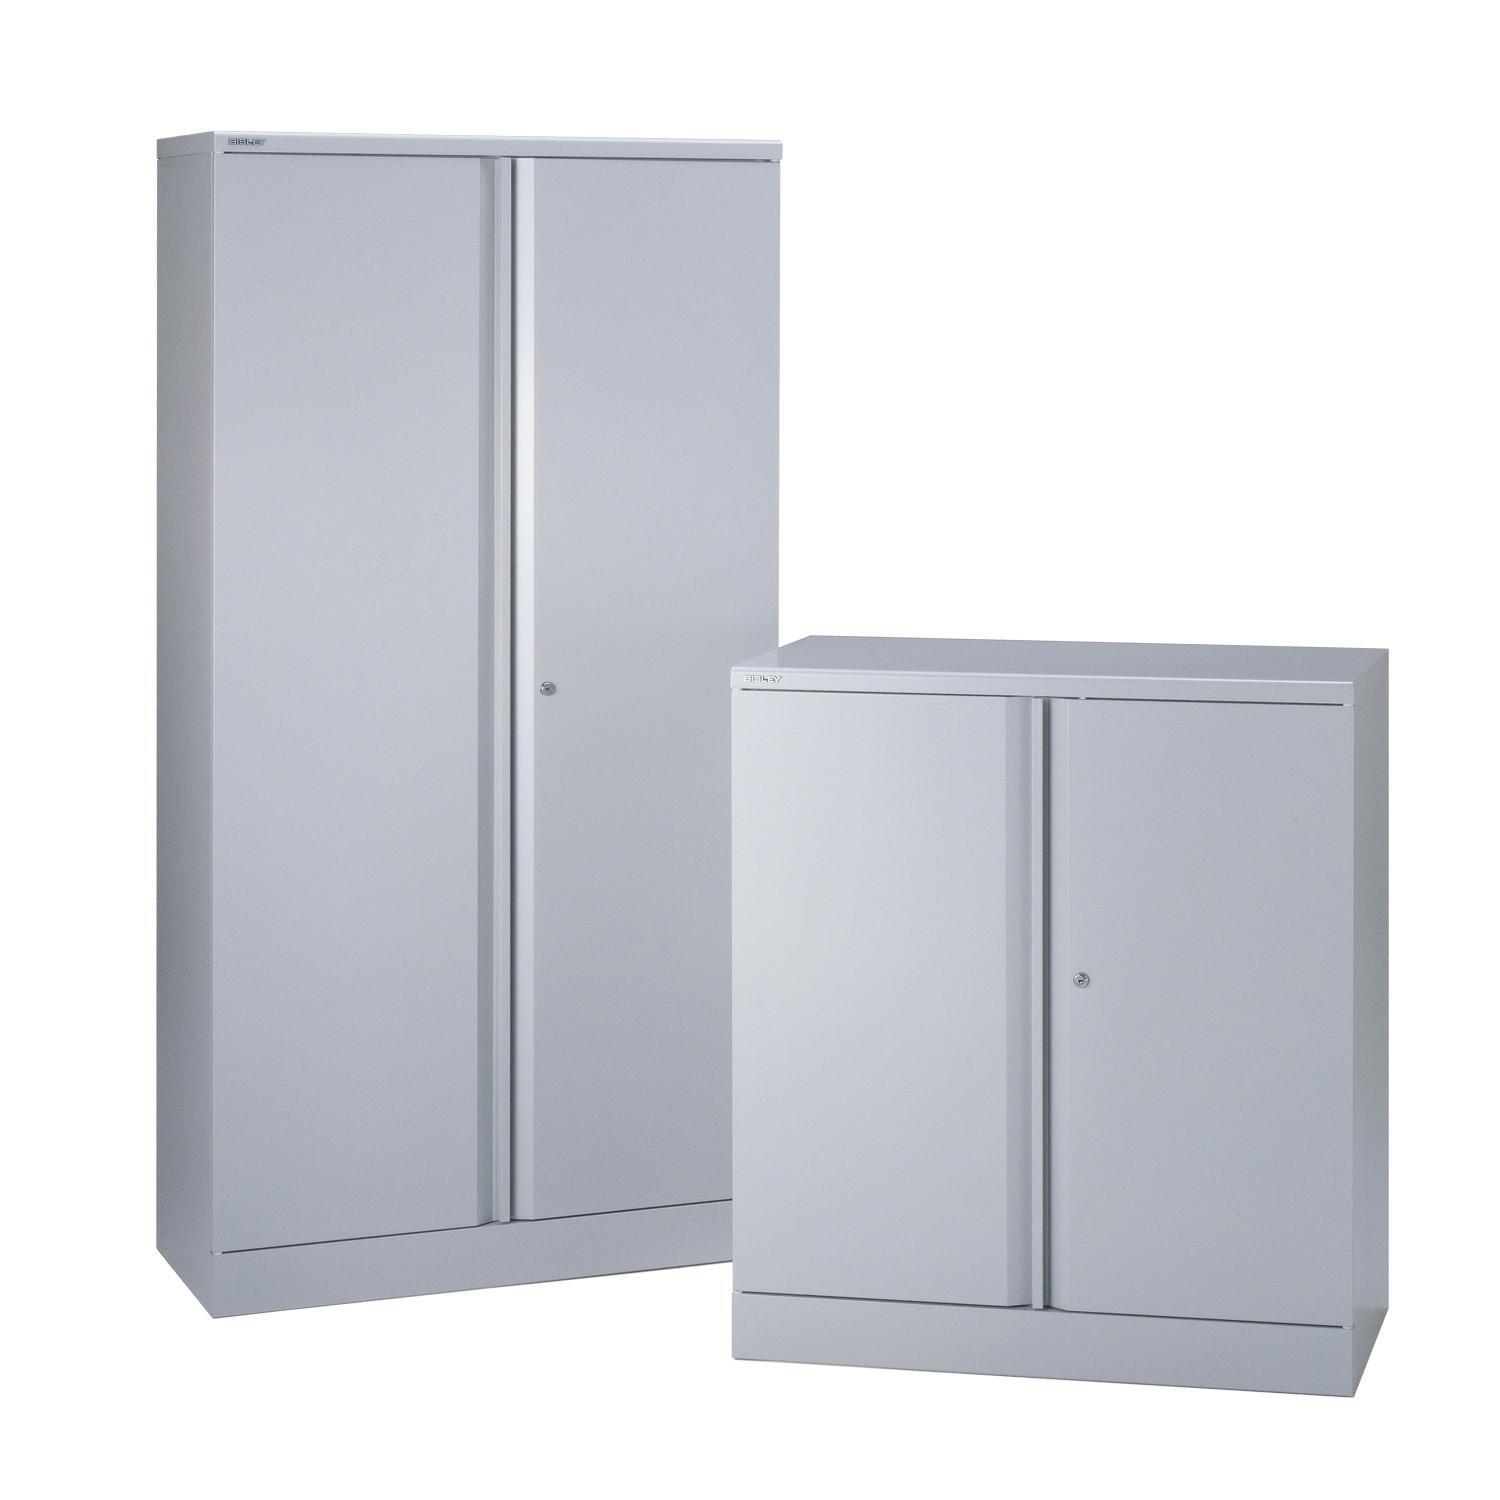 Office Cupboards with fitments from Bisley